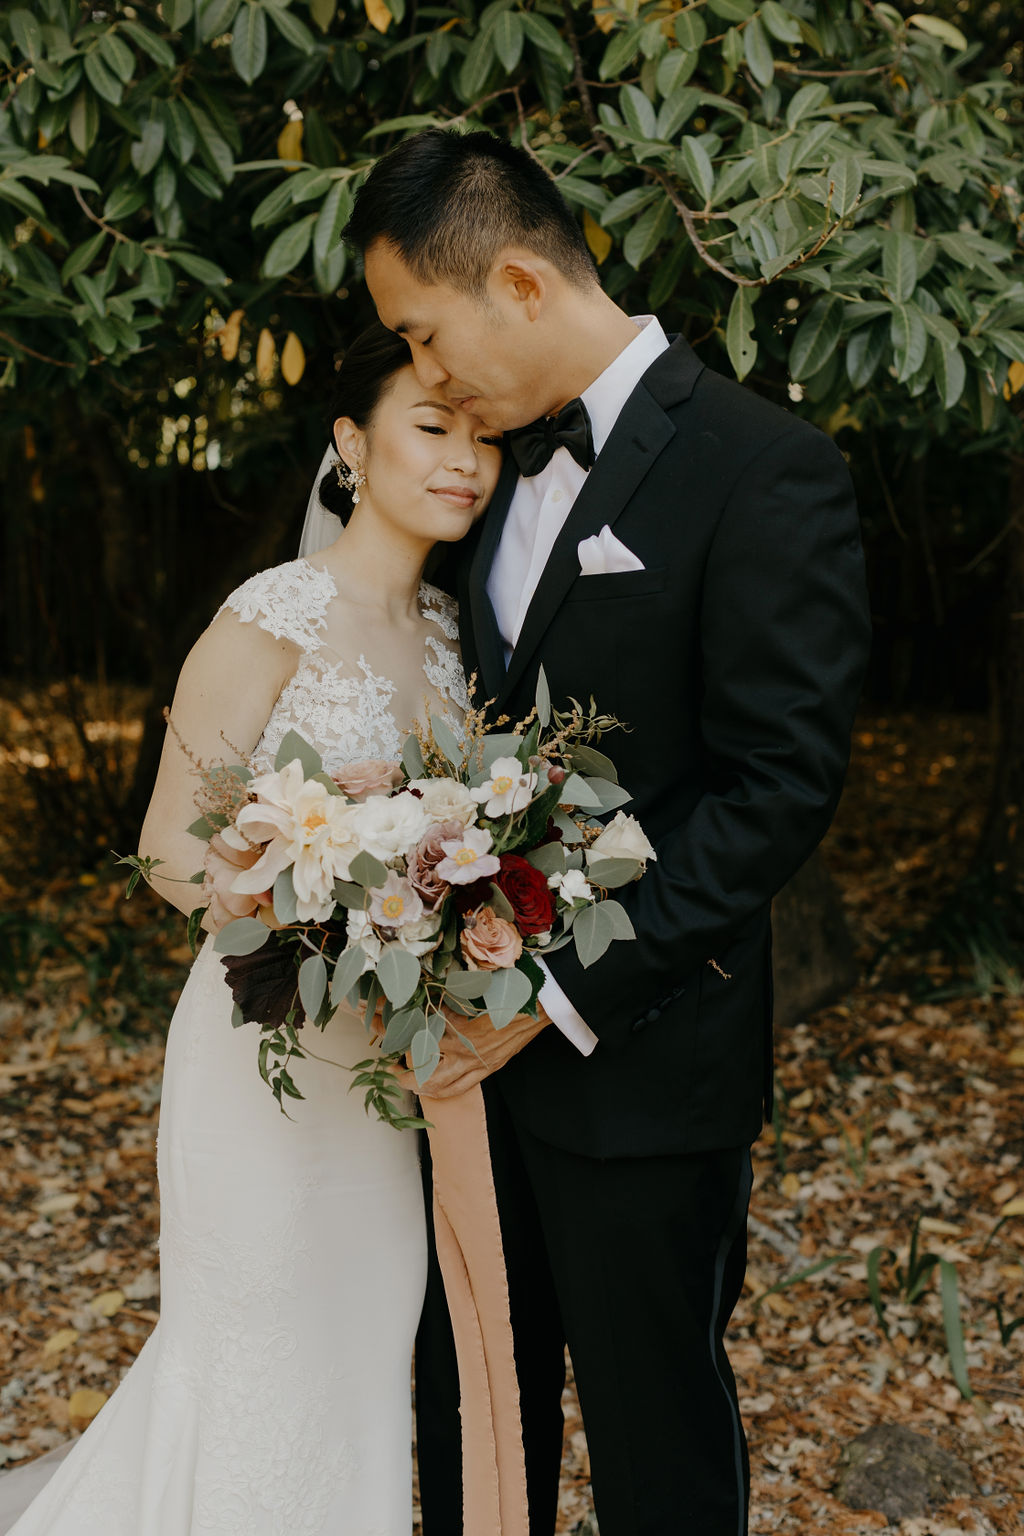 Deer Park Villa Wedding Planner Perfectly Planned Moments Nirav Patel Photography Bellevue Floral Co Bridal Photo.JPG